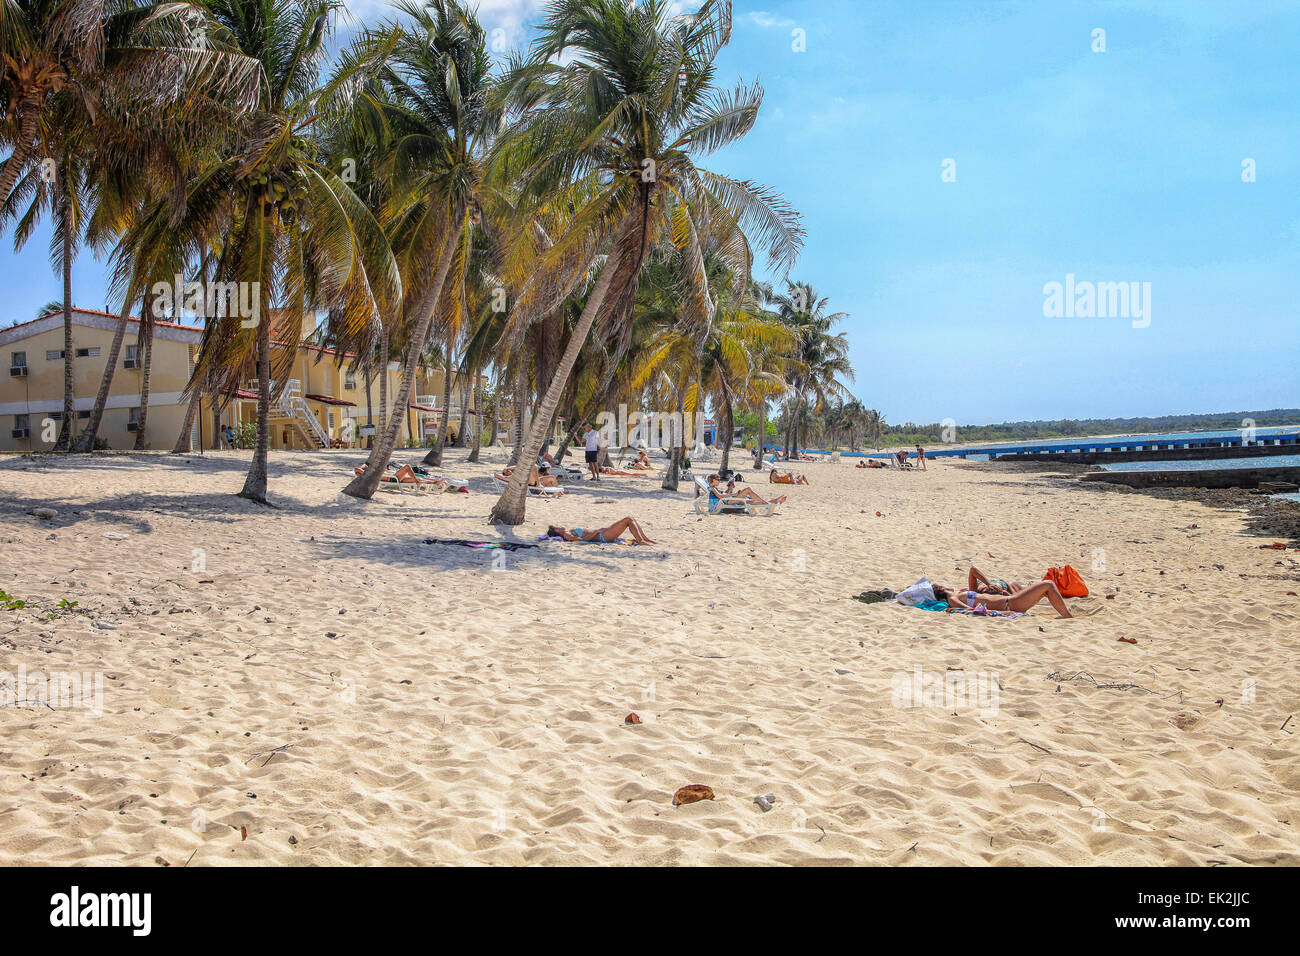 People Lying In The Sand Of Tropical Beach With Palm Trees And A Blue Ocean On Maria La Gorda Cuba